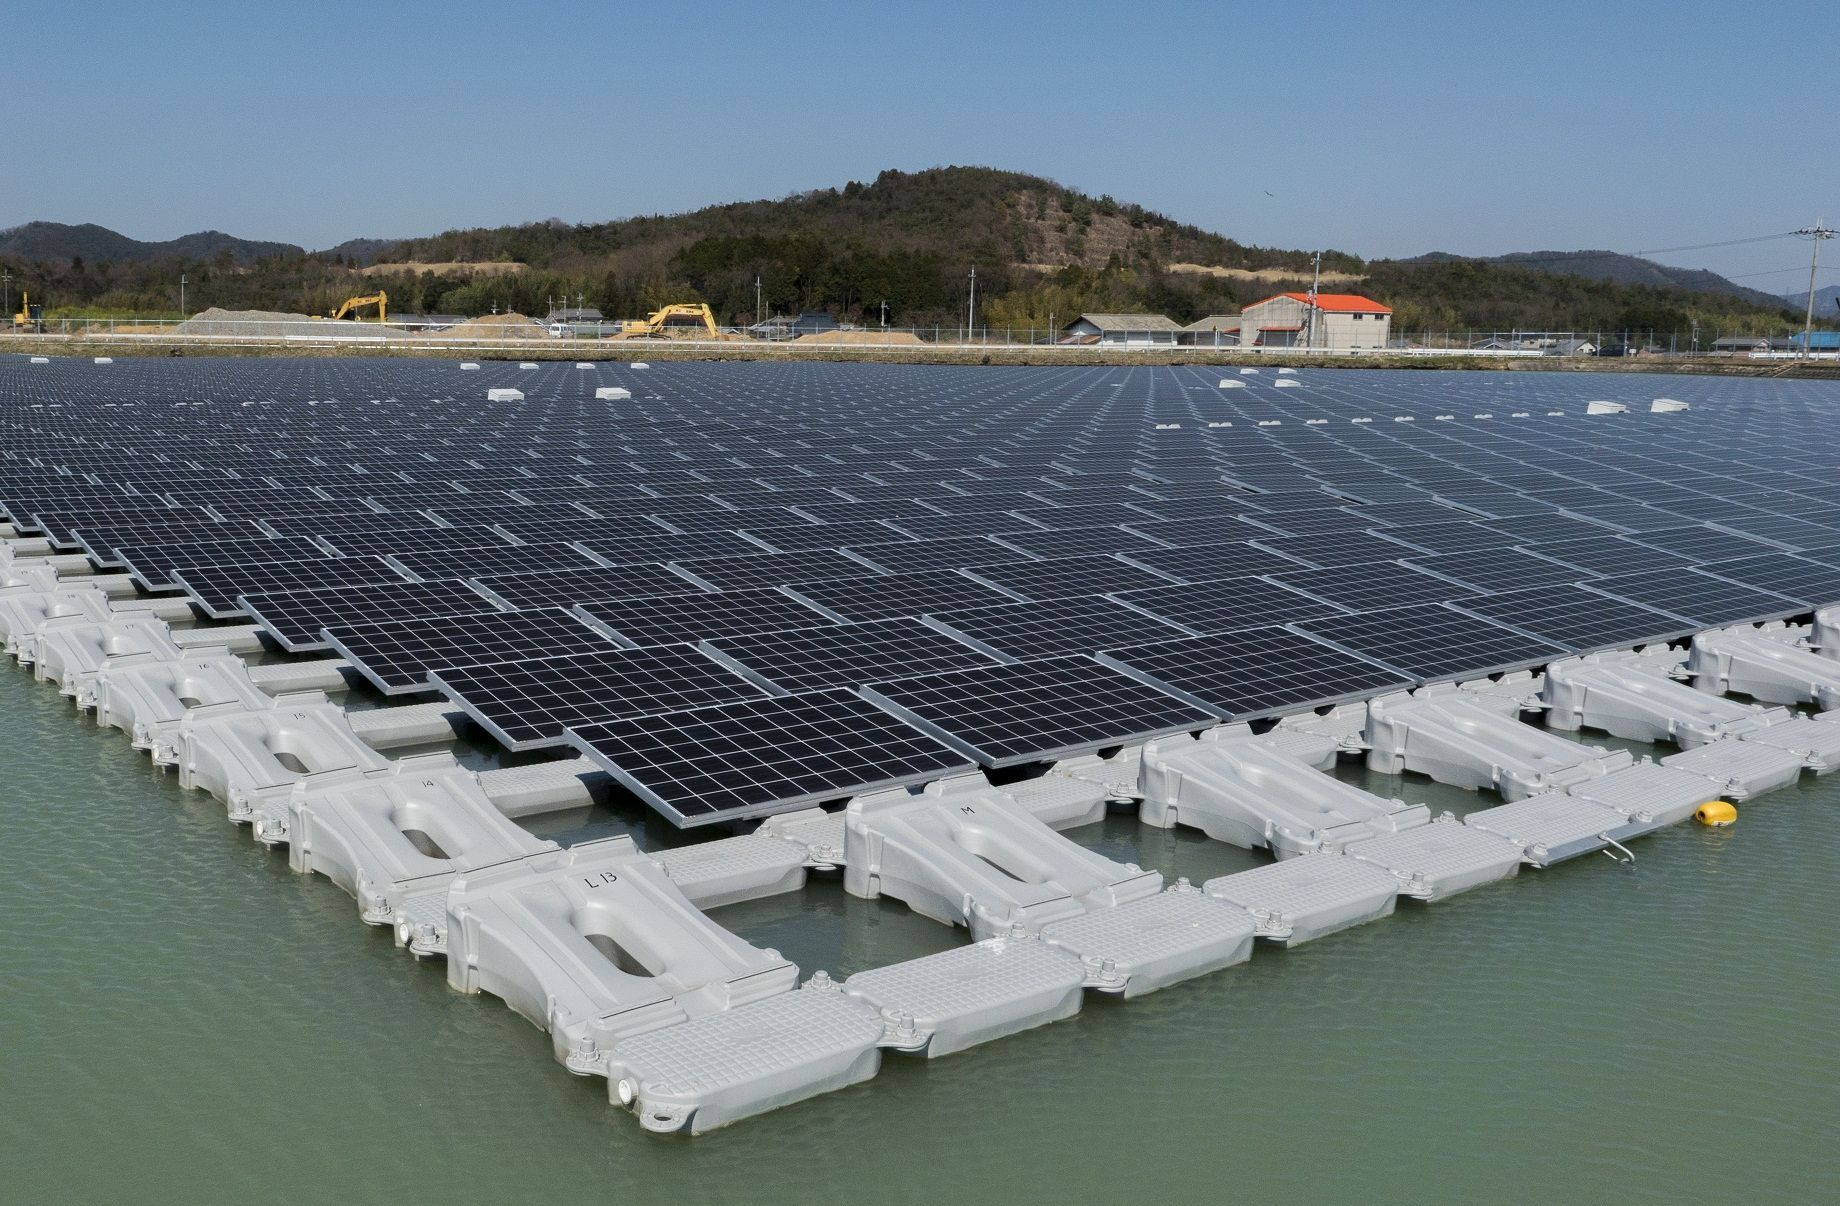 Kyocera tcl solar inaugurates floating mega solar power plants in kyocera tcl solar inaugurates floating mega solar power plants in hyogo prefecture japan business wire publicscrutiny Choice Image